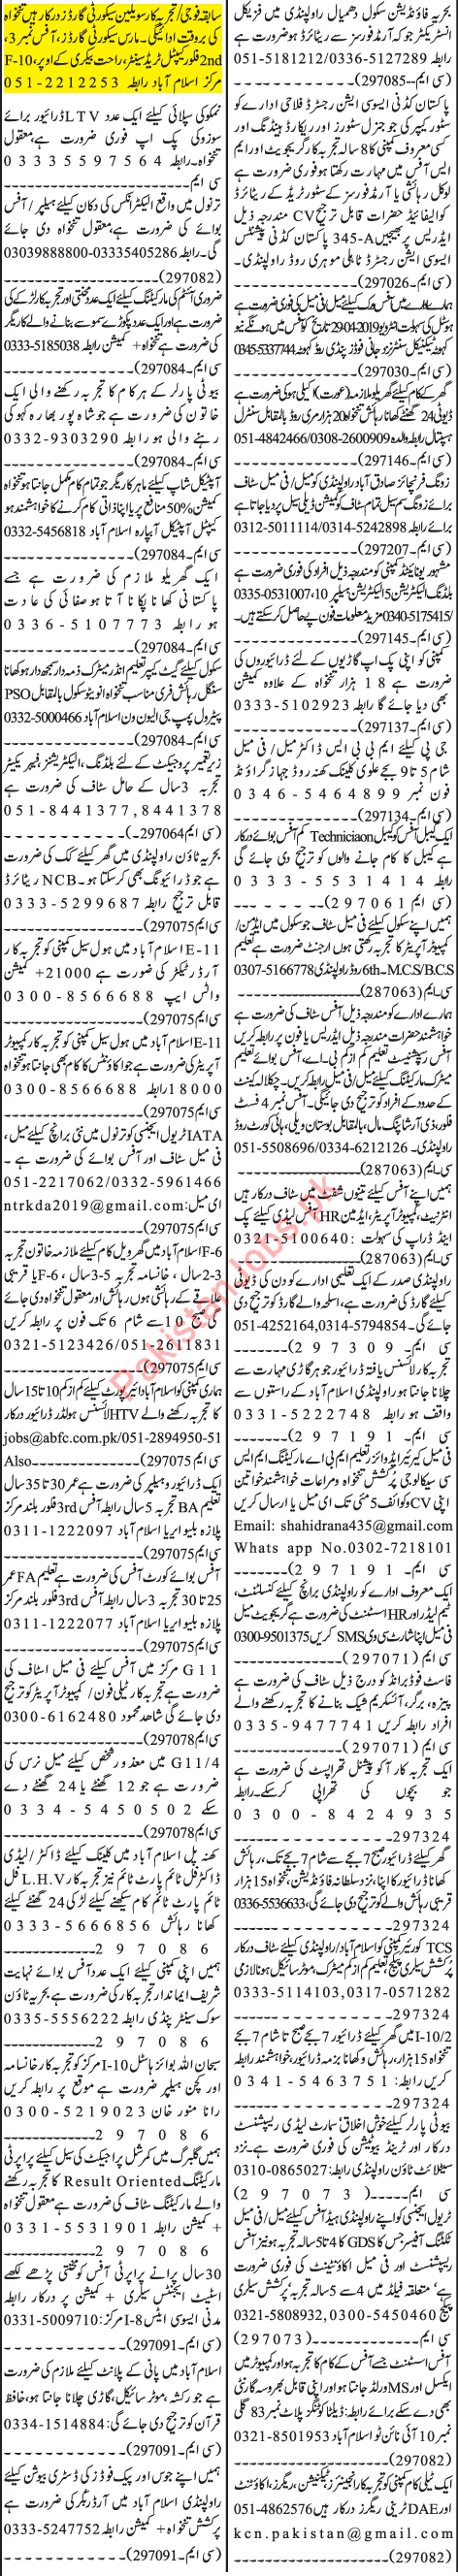 Jang Sunday Classified Ads 28th April 2019 for General Staff 2019